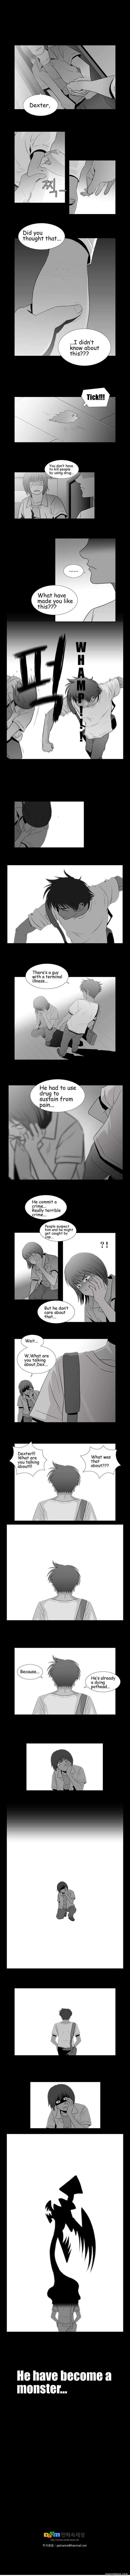 Hanged Doll 62 Page 2